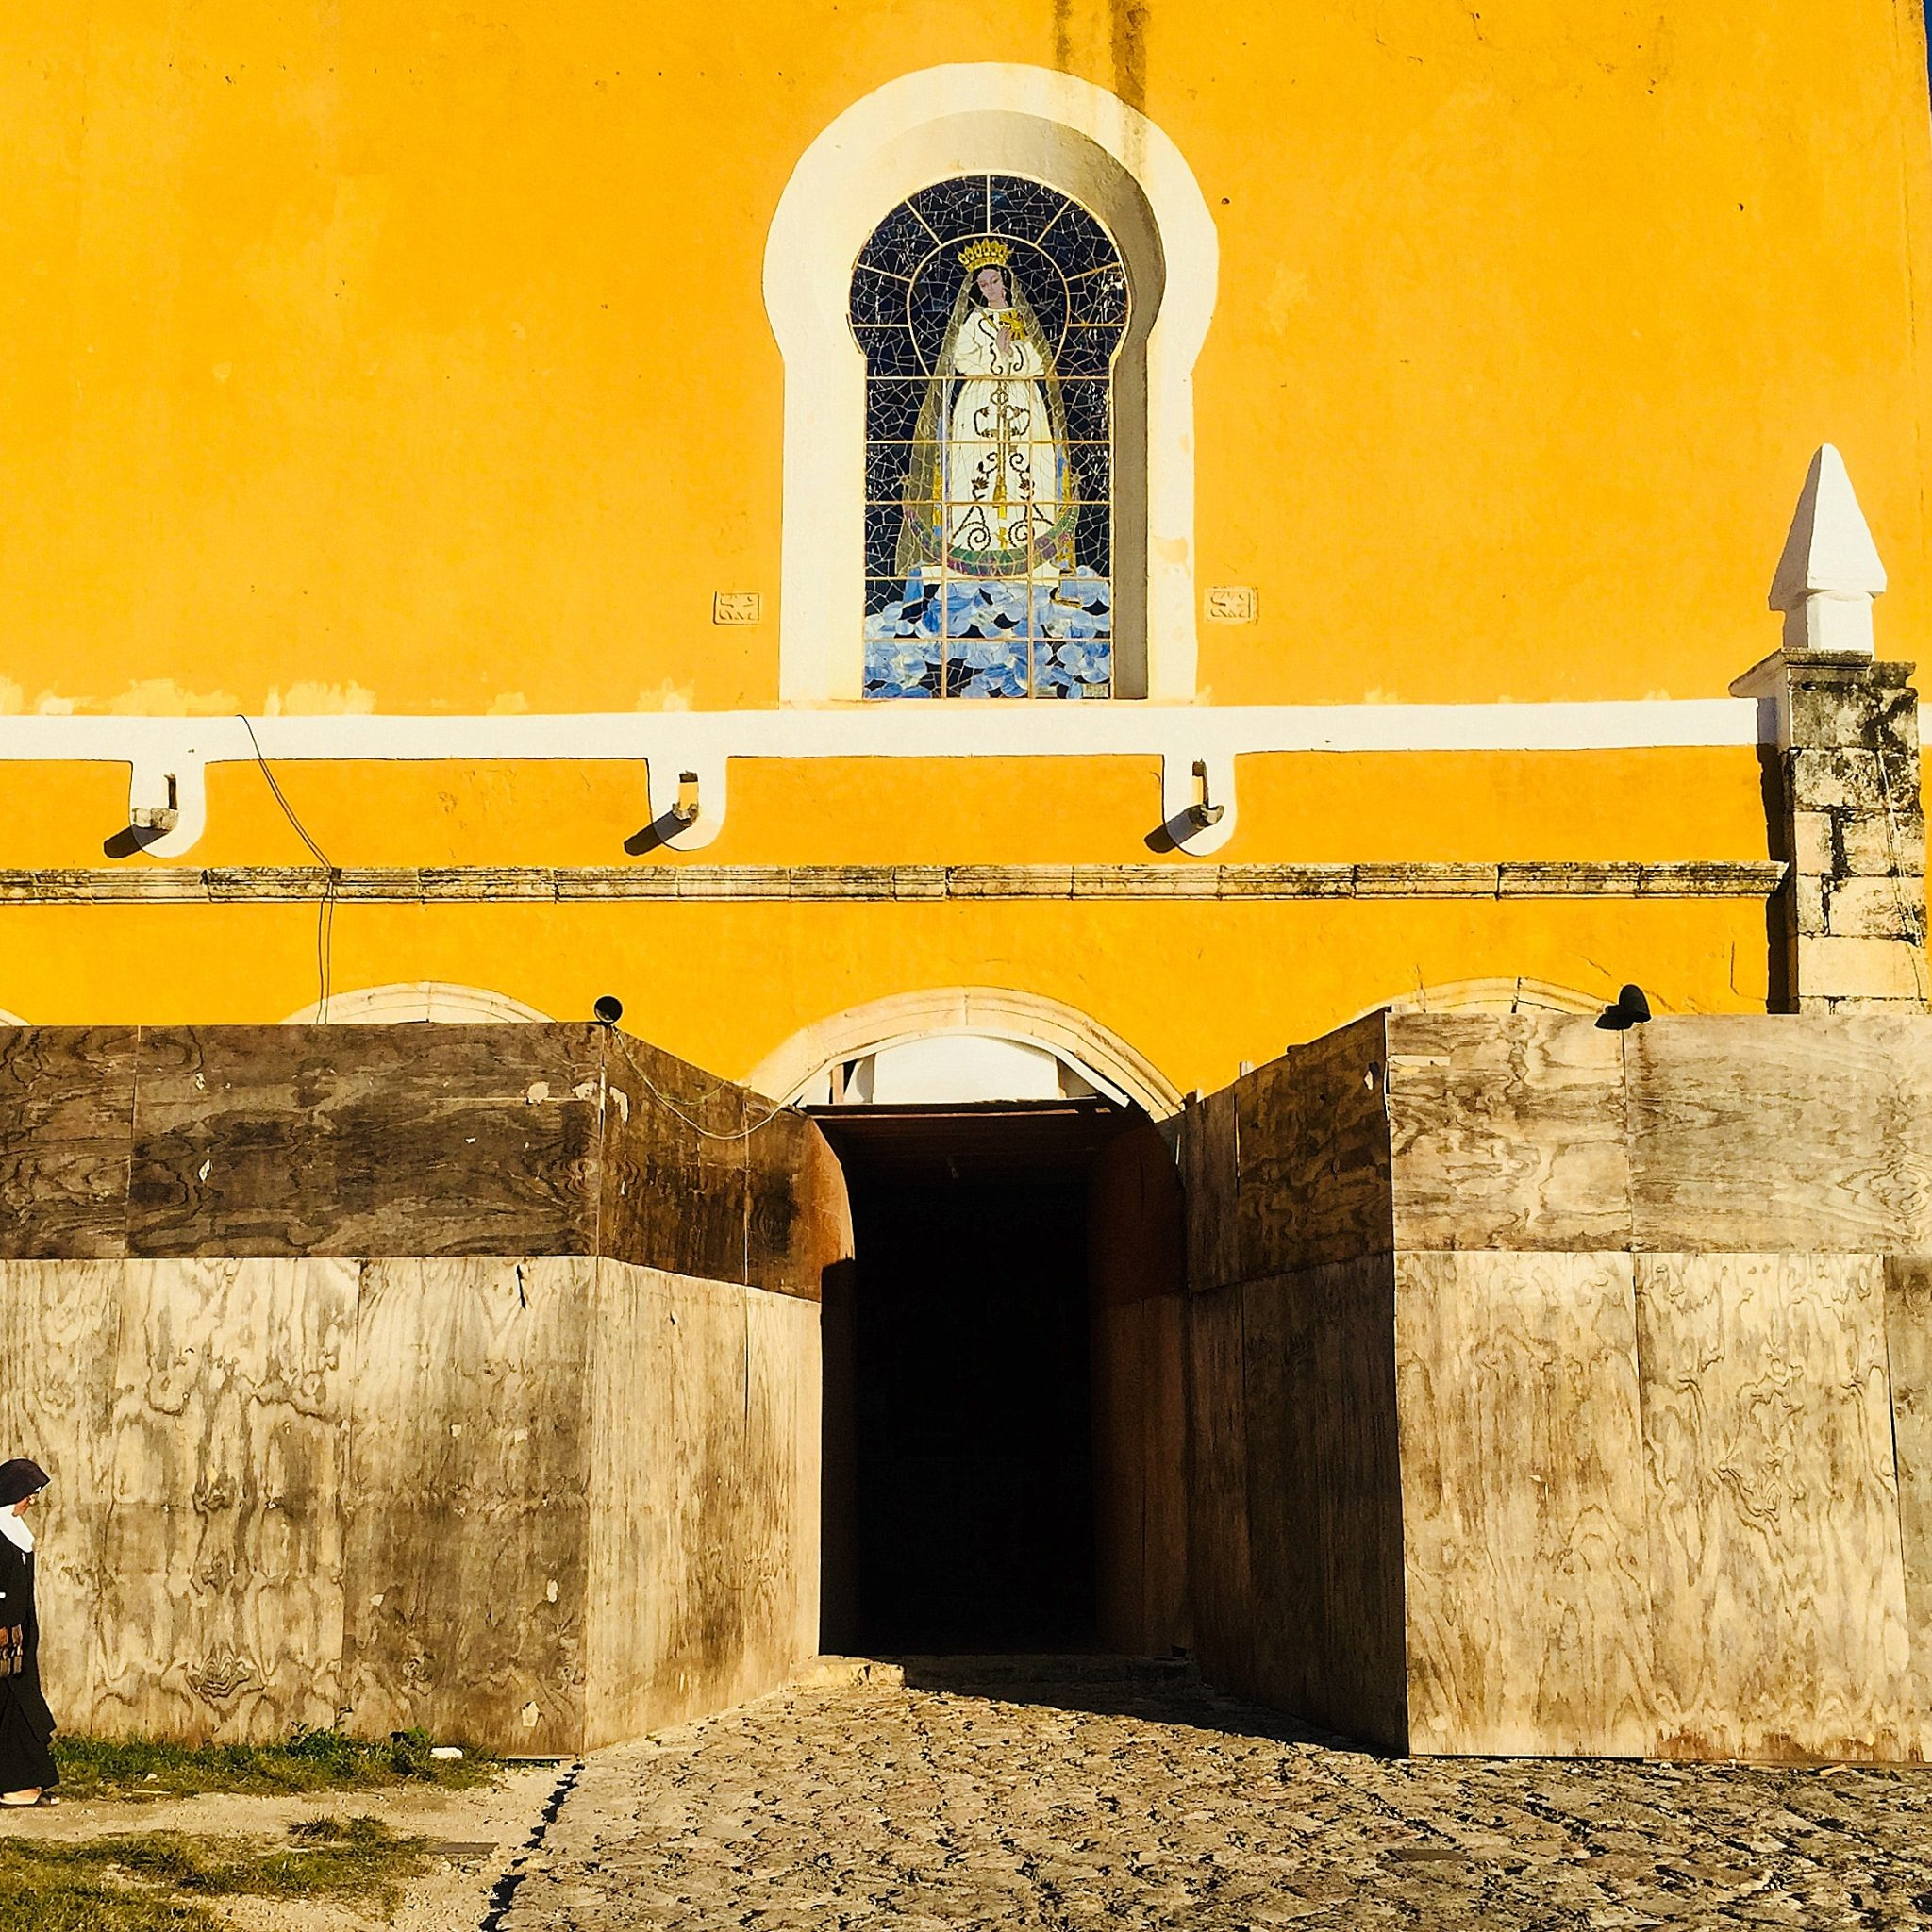 John Paul II expressed his support for the Mayan culture and identity during his visit to Izamal in 1993.